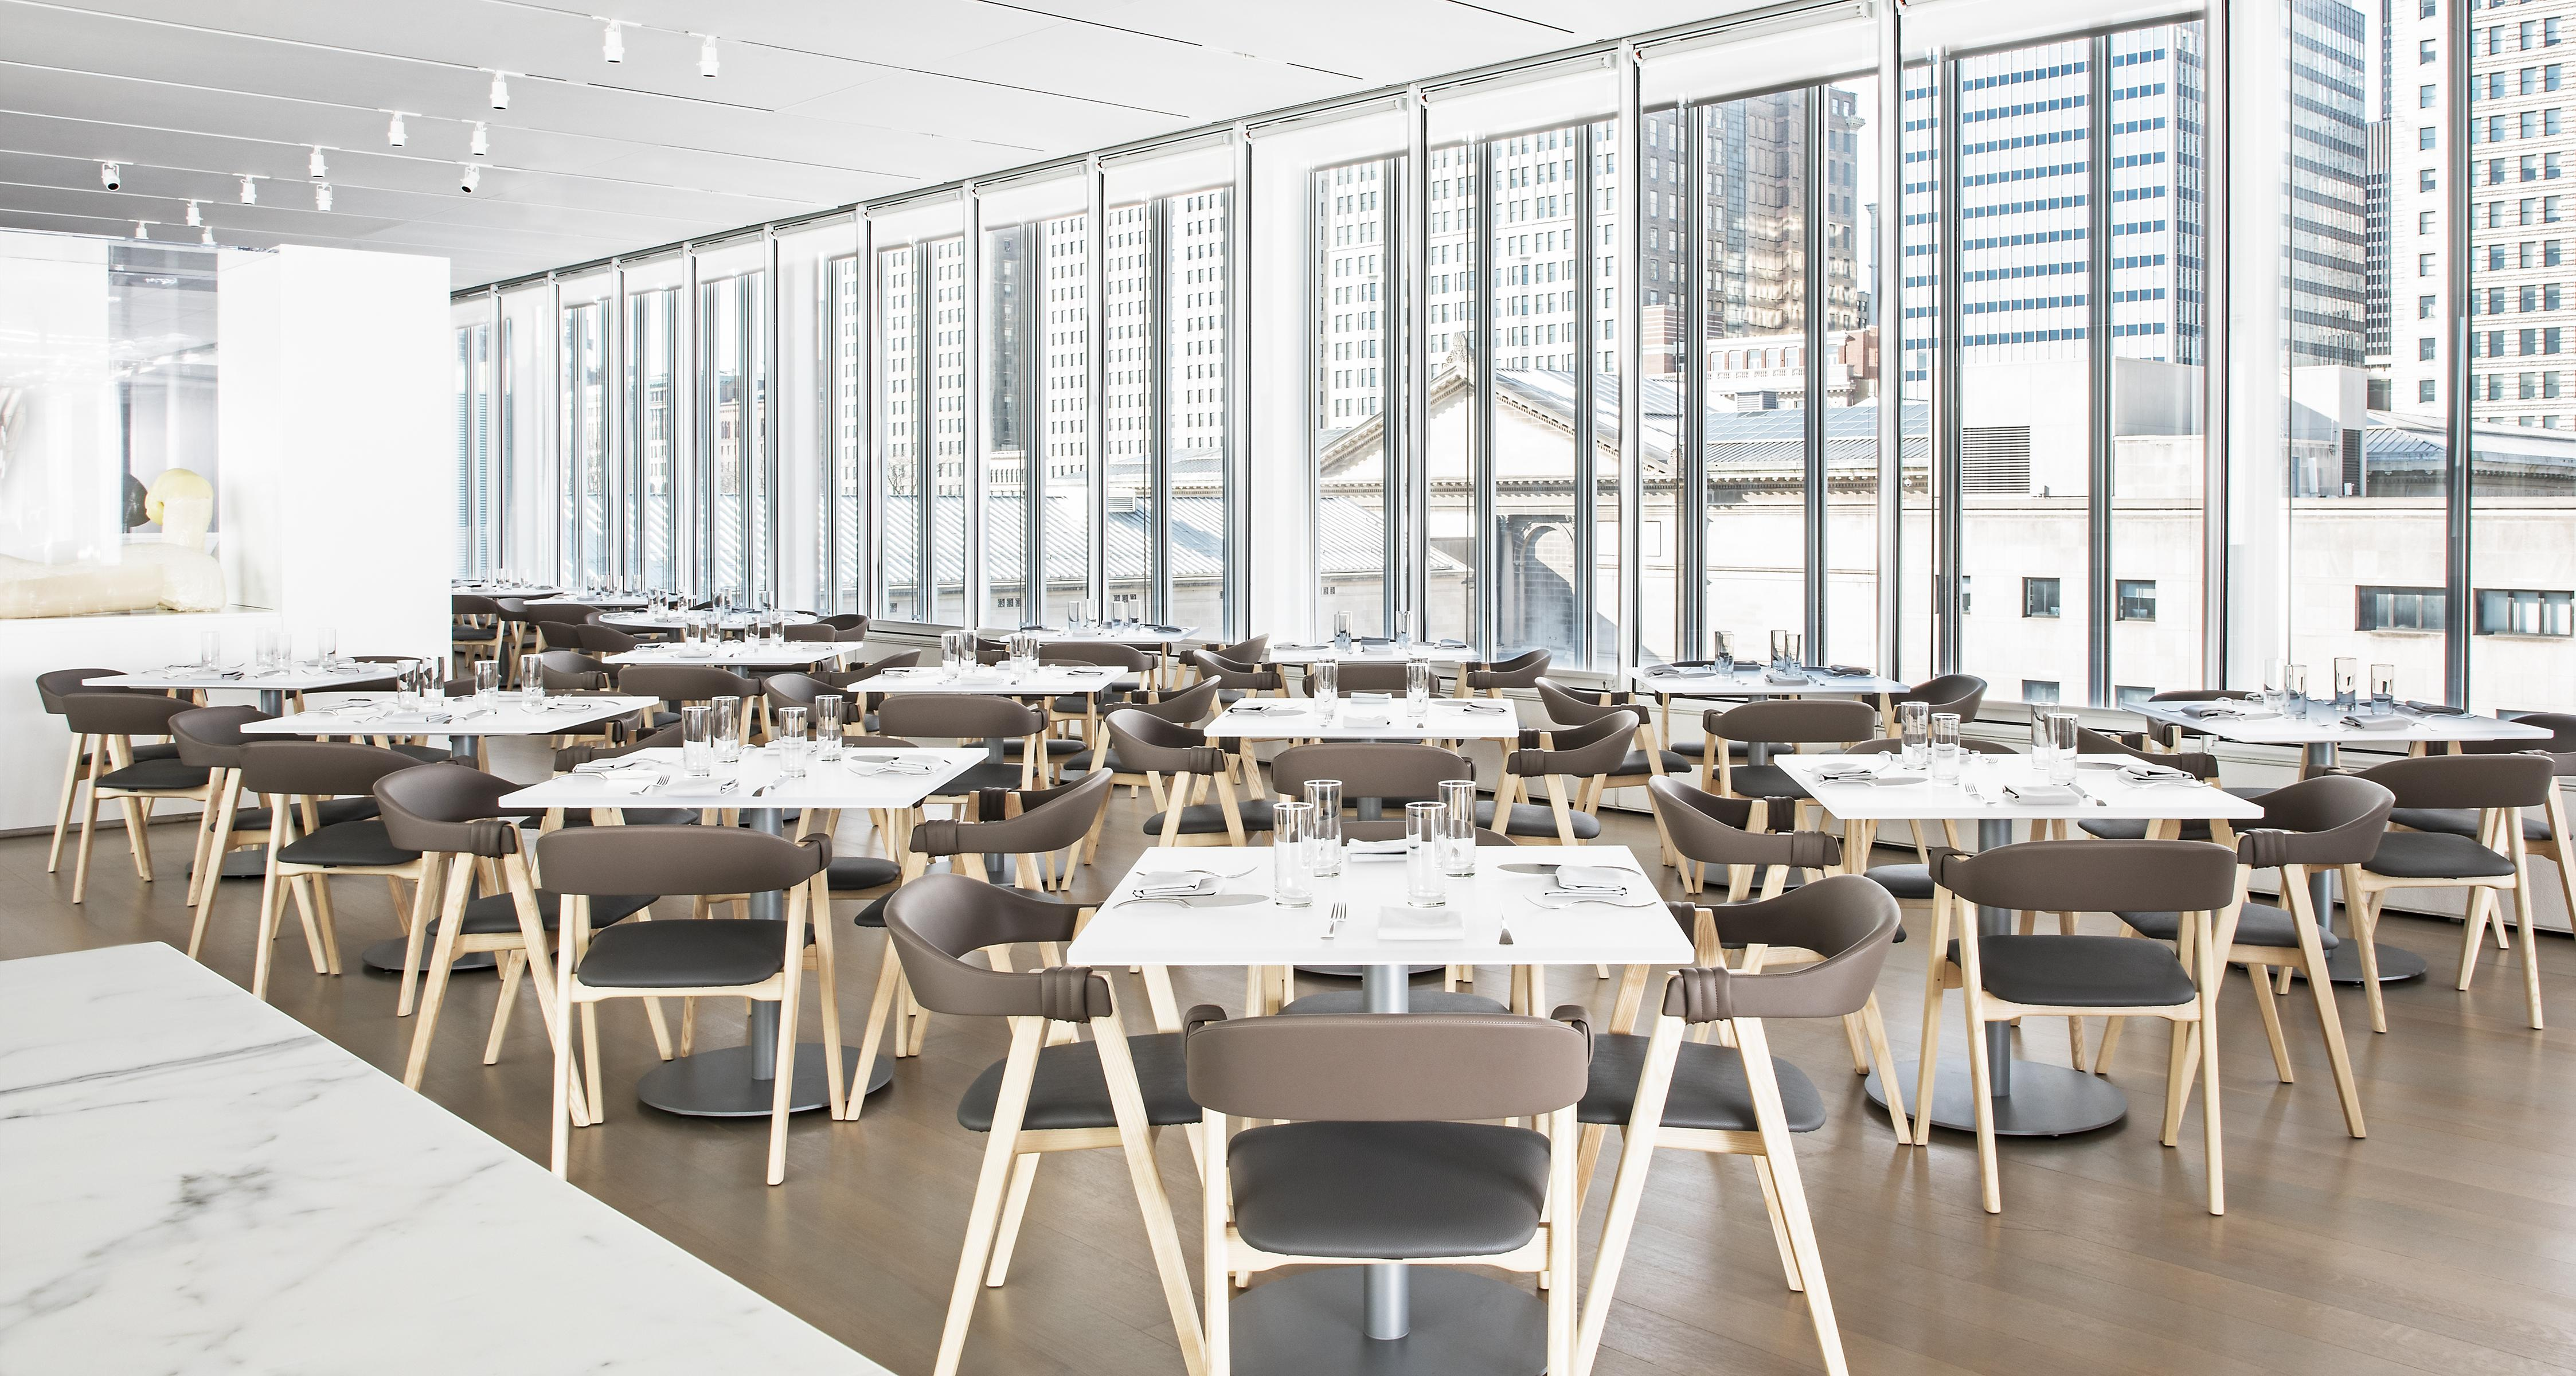 Cucina Restaurant Kuwait Menu Terzo Piano At The Art Institute Of Chicago Private Dining